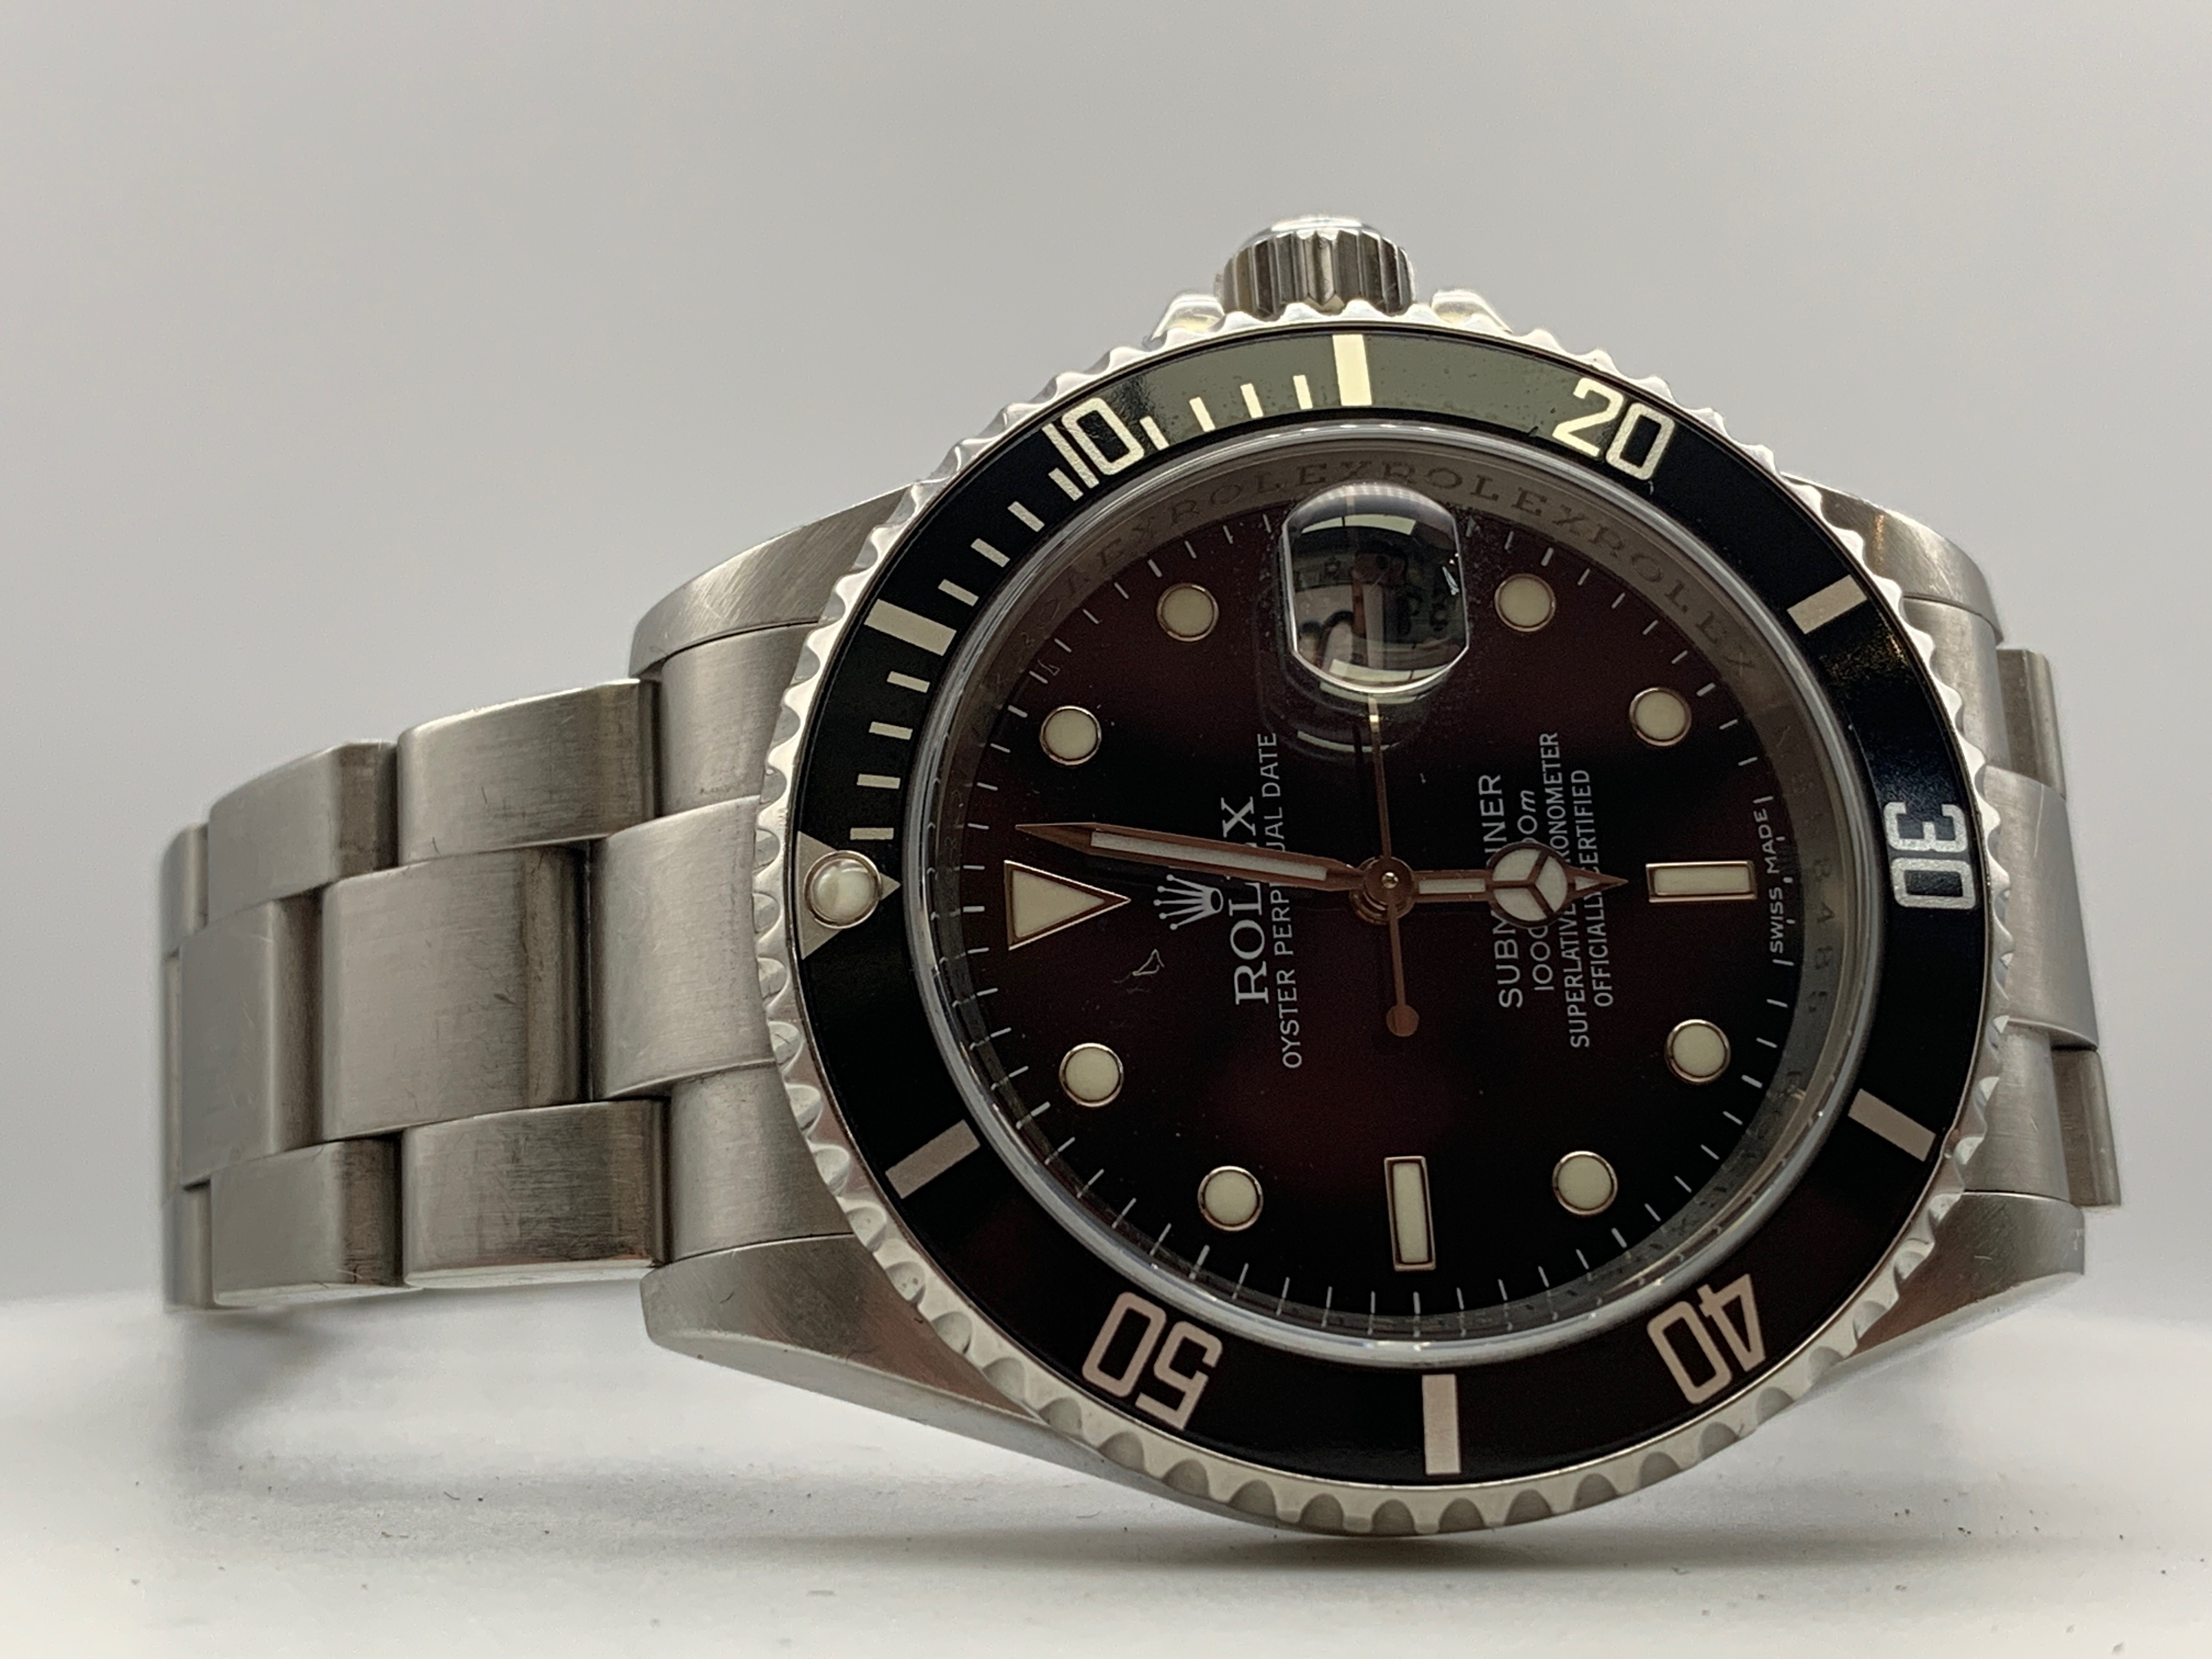 Rolex Submariner (Sub) in stainless steel.